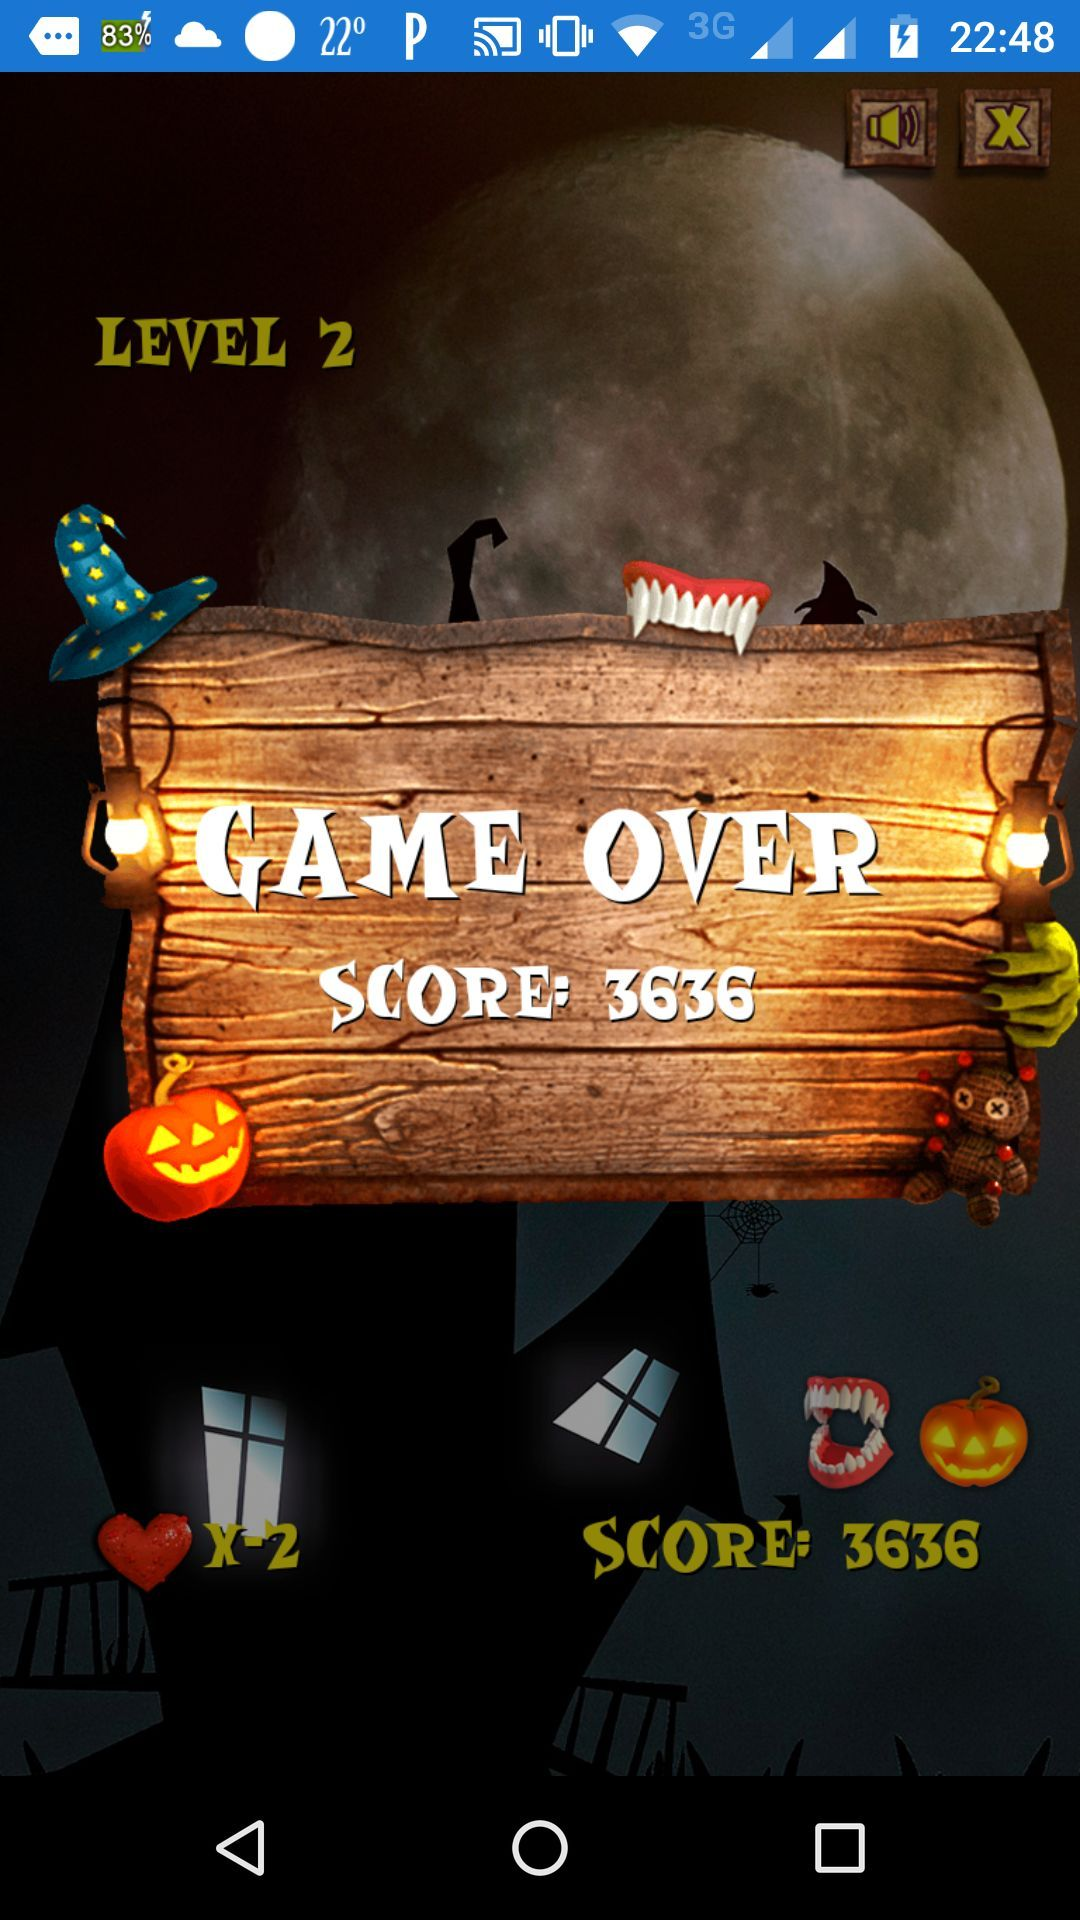 MATCH ALL THE HALLOWEEN SYMBOLS TO CLEAR THE LEVEL